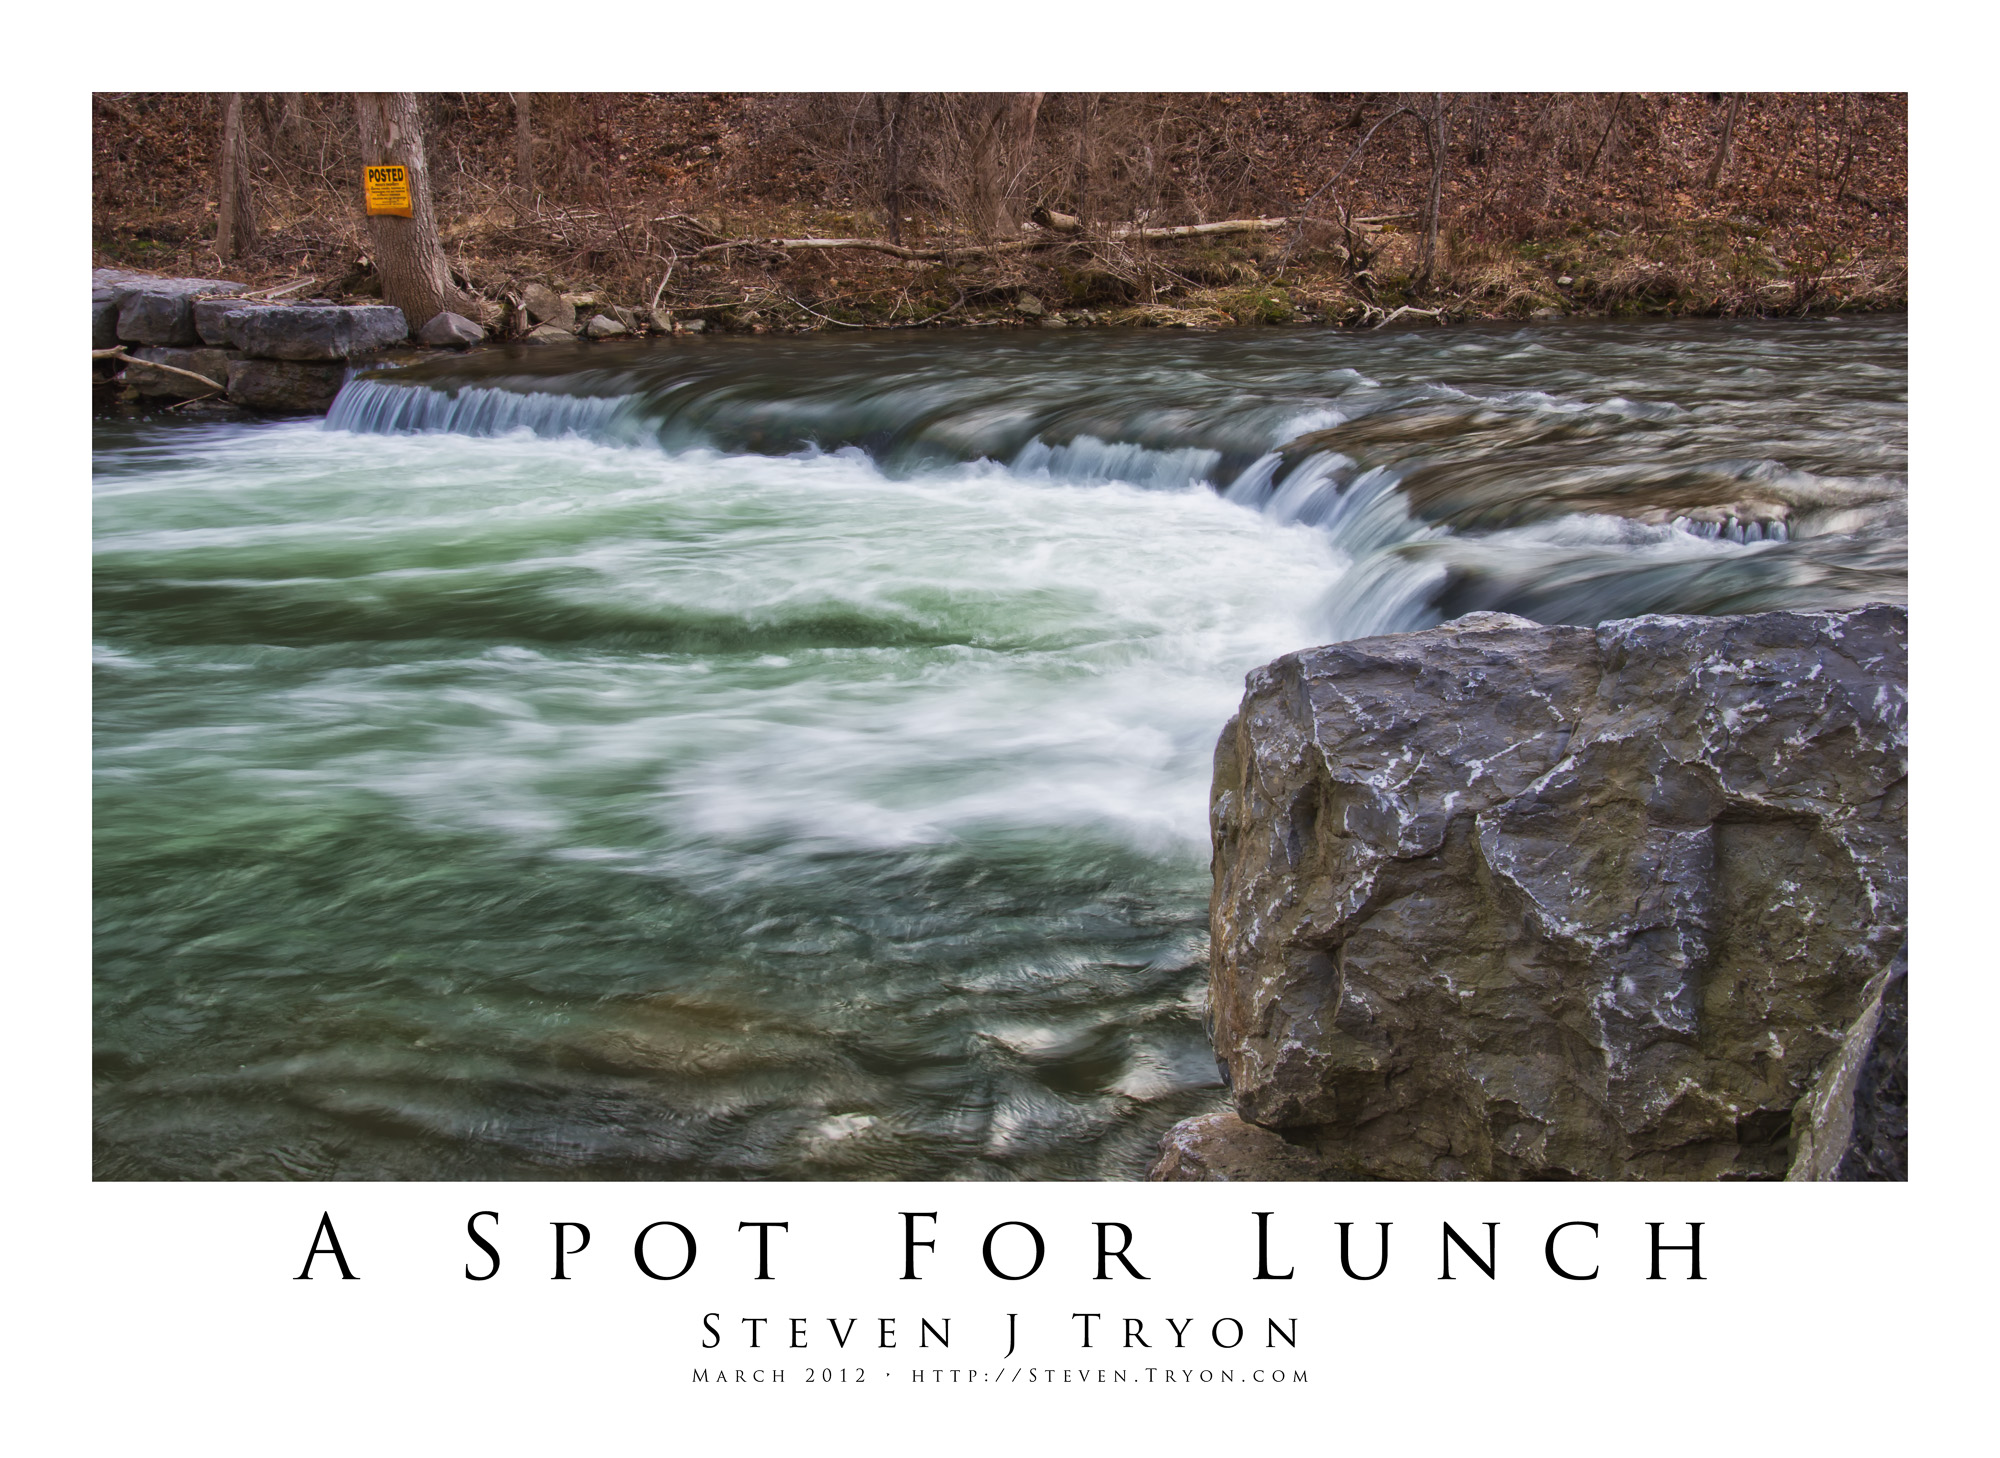 A Spot For Lunch